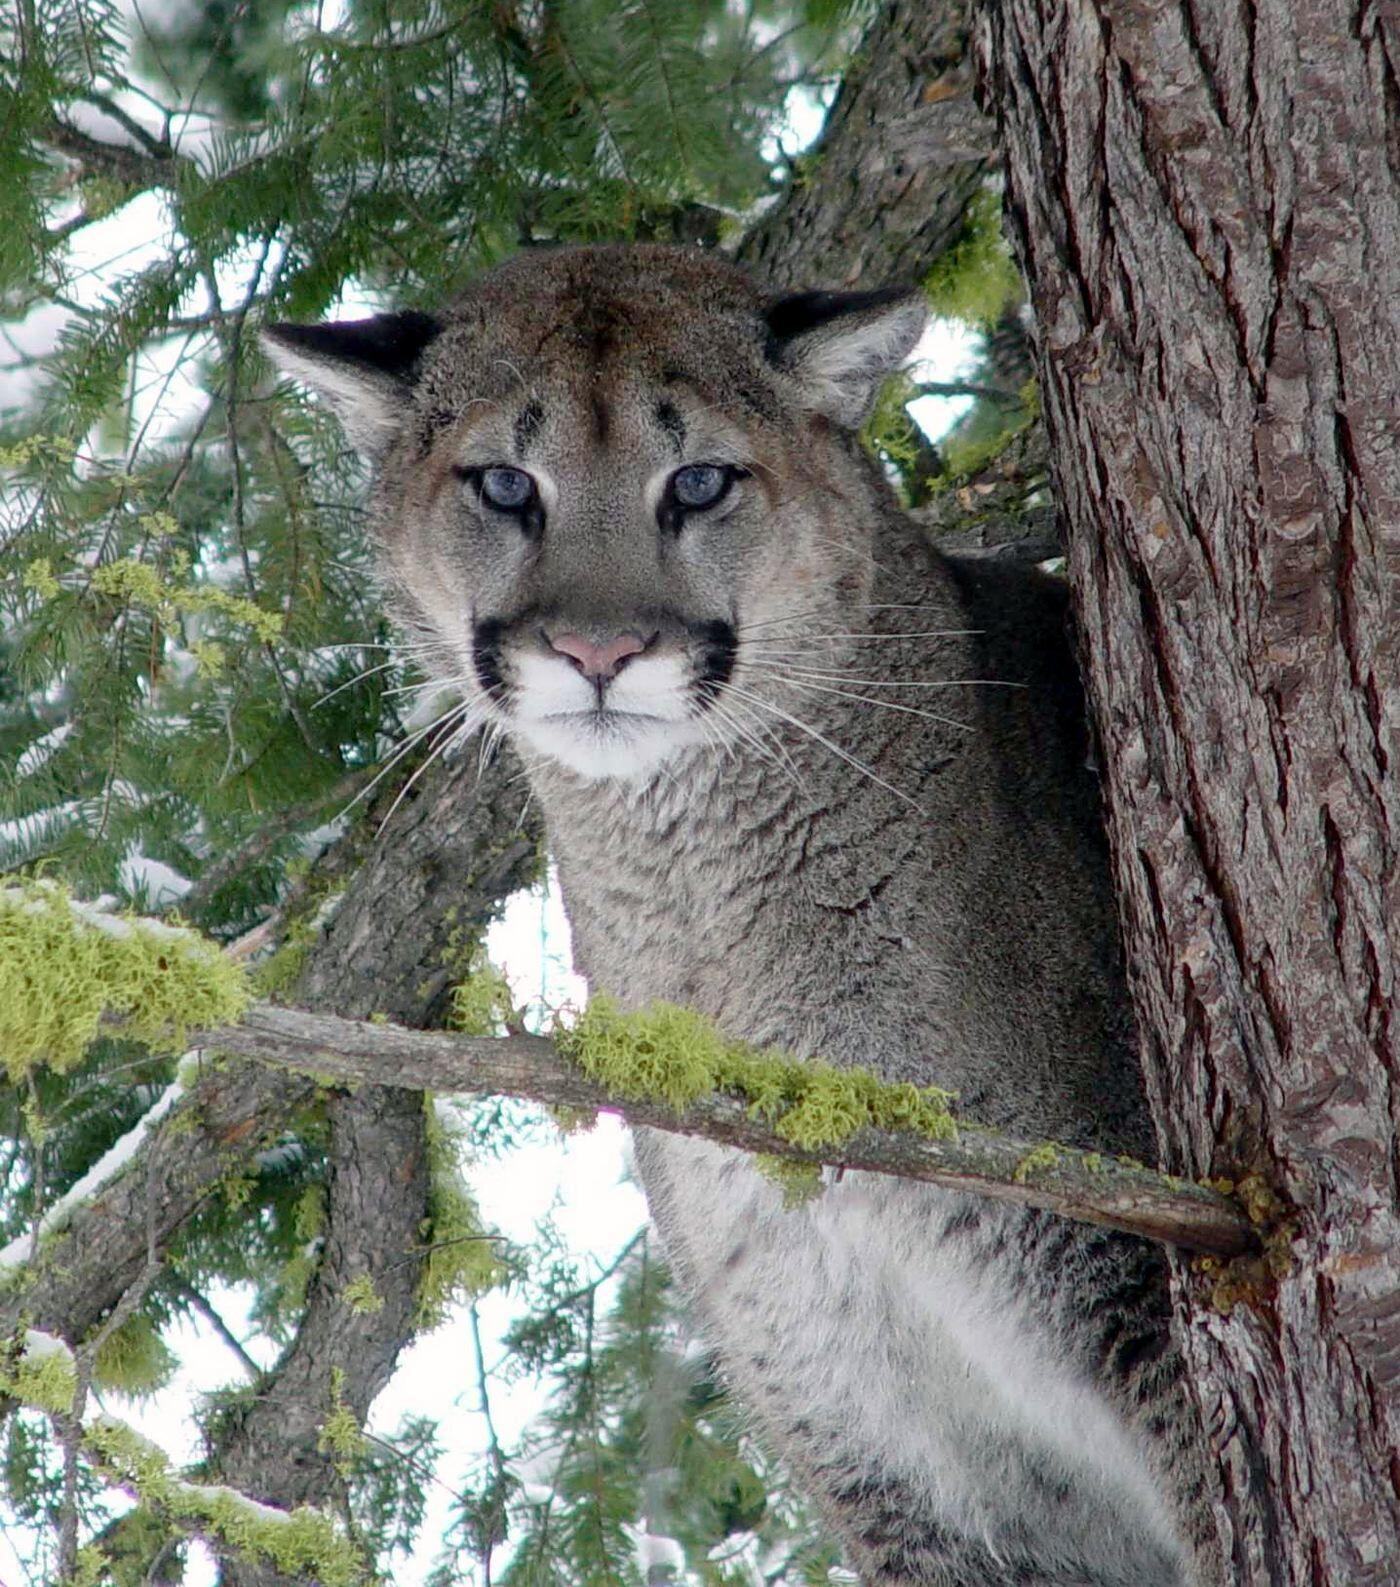 Zion Cougar, photo by Washington Fish and Wildlife, at http://oregonstate.edu/dept/ncs/photos.html#act